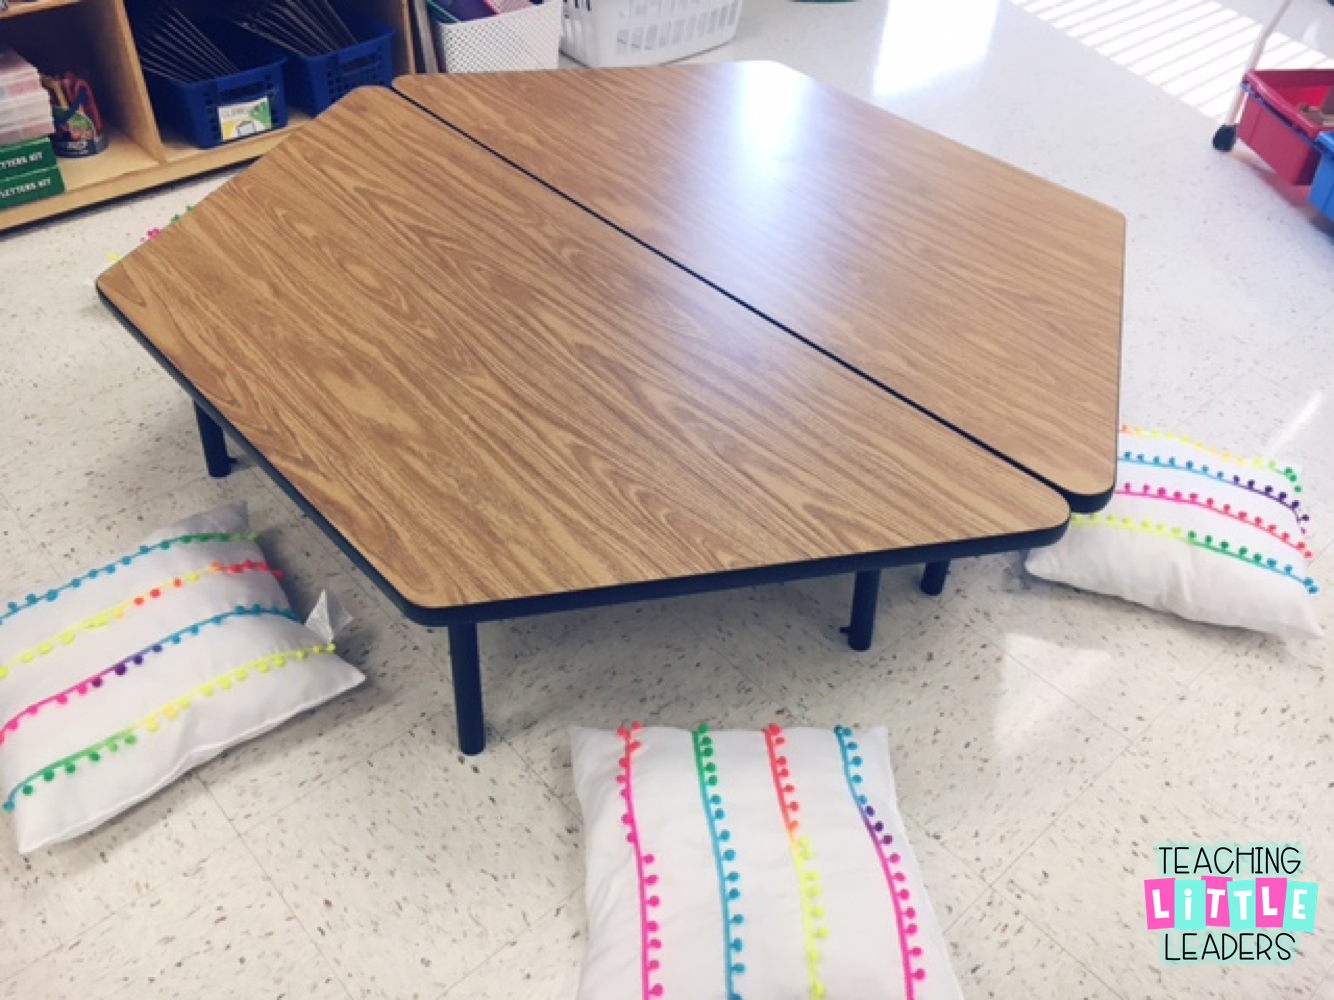 In Our Classroom We Refer To Flexible Seating Options As Just Right Spots These Are Spaces The Room Where Students Can Do Their Best Learning A